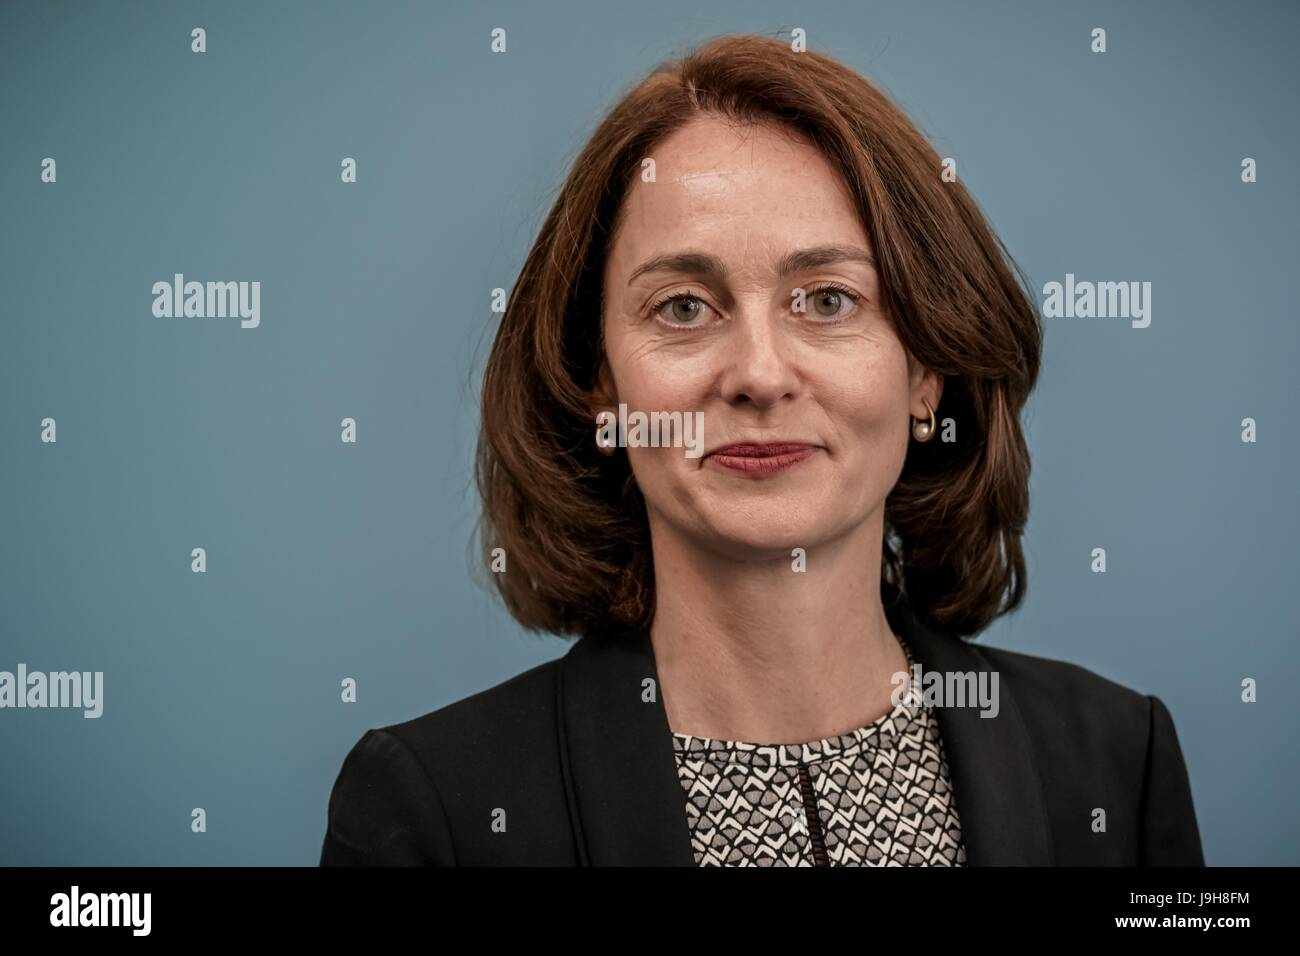 The new German Minister of Family Affairs Katarina Barley (SPD) during the handover of office at the Ministry of - Stock Image